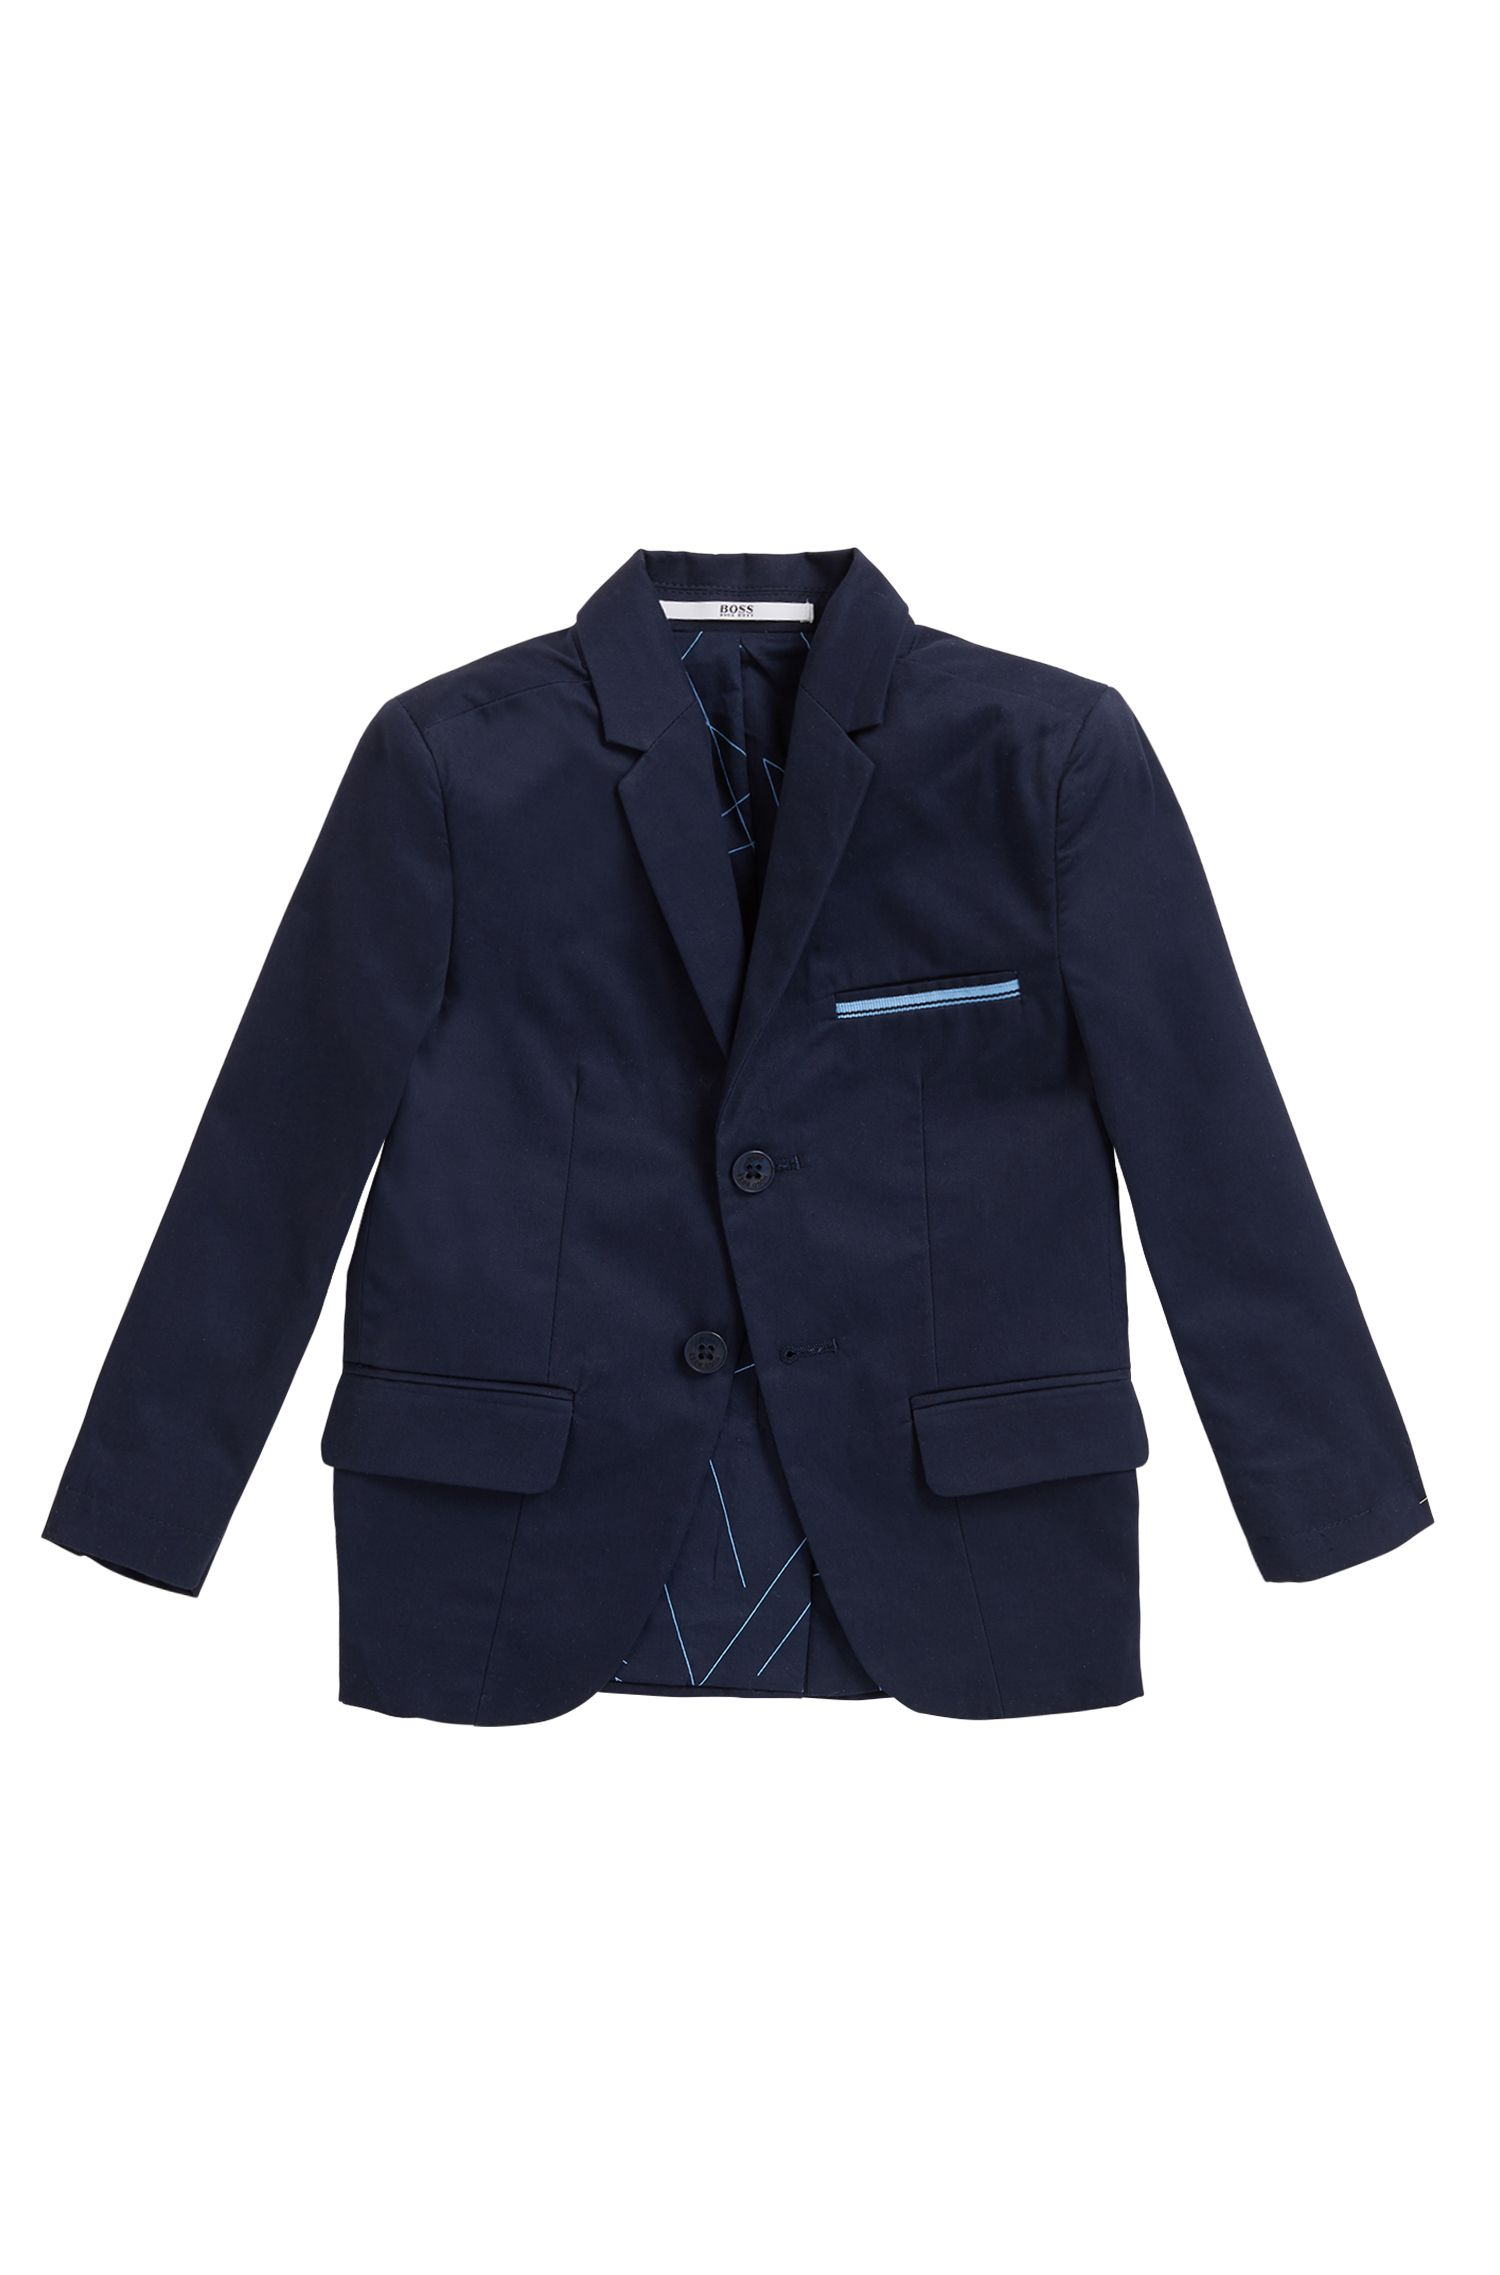 Kids' suit jacket in cotton twill